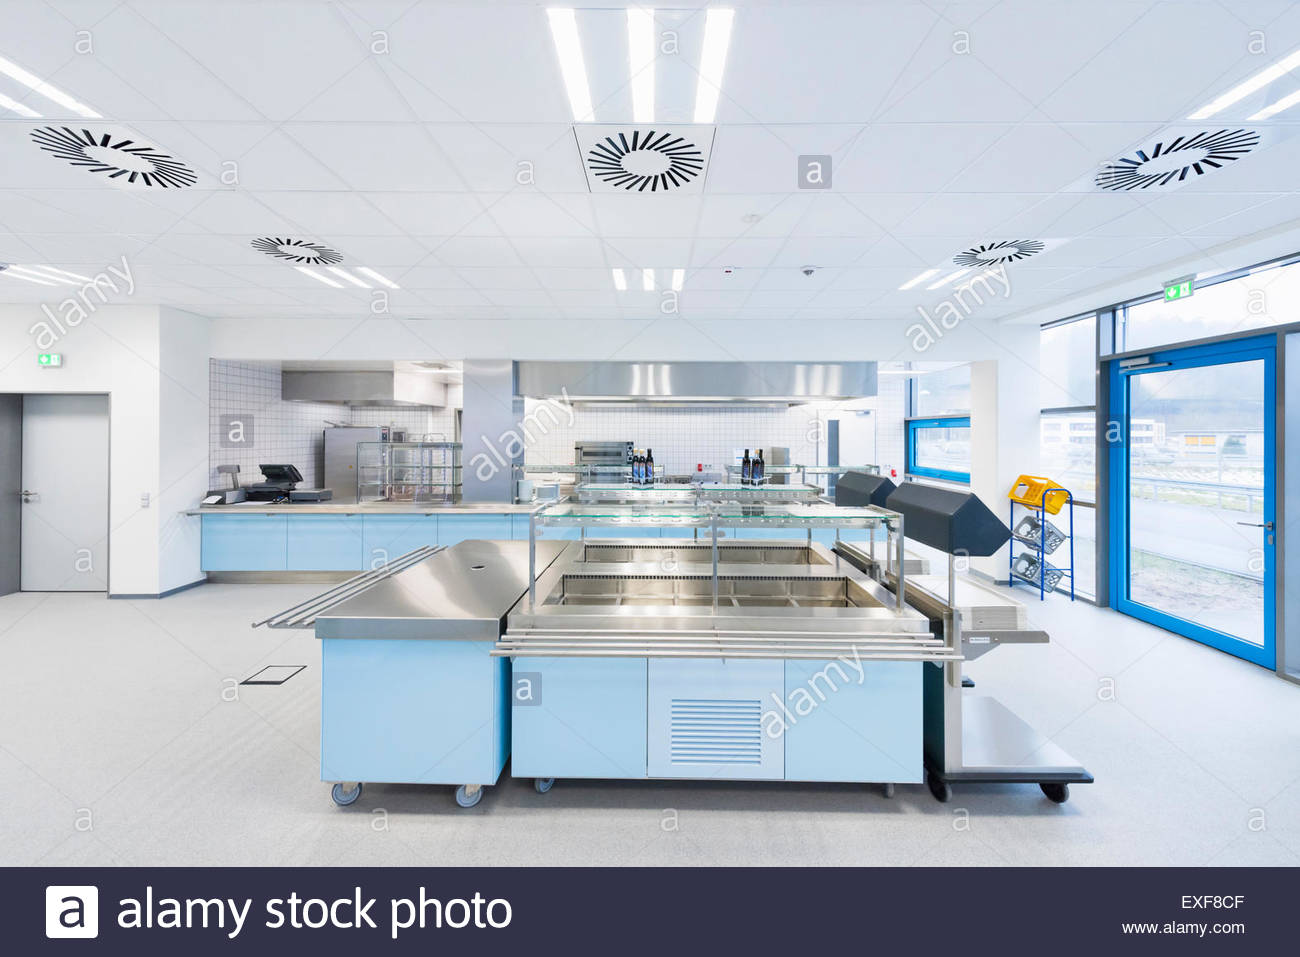 Empty factory canteen with serving counters - Stock Image